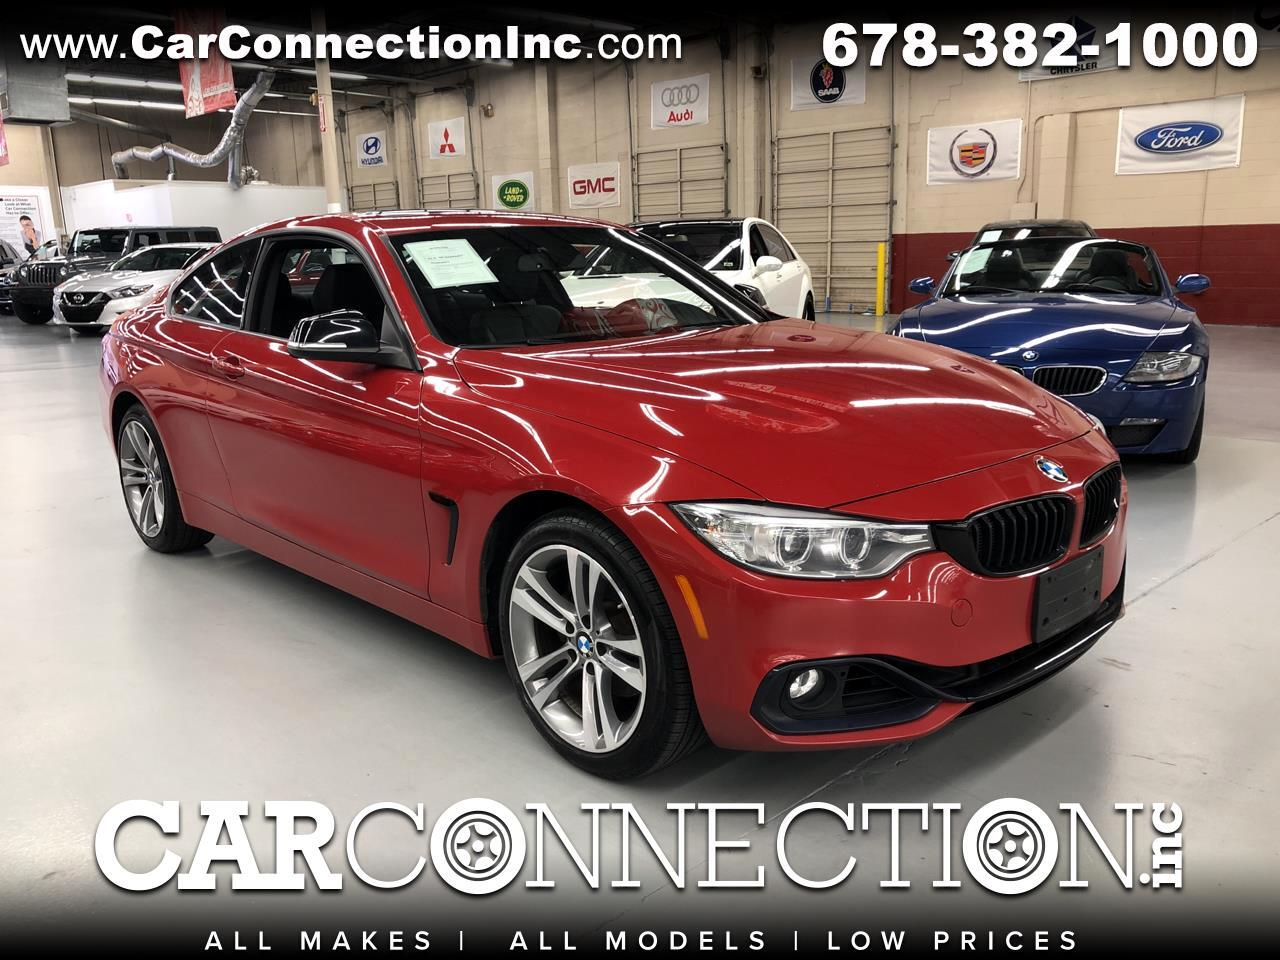 2015 BMW 4 Series 428i xDrive Sport Coupe